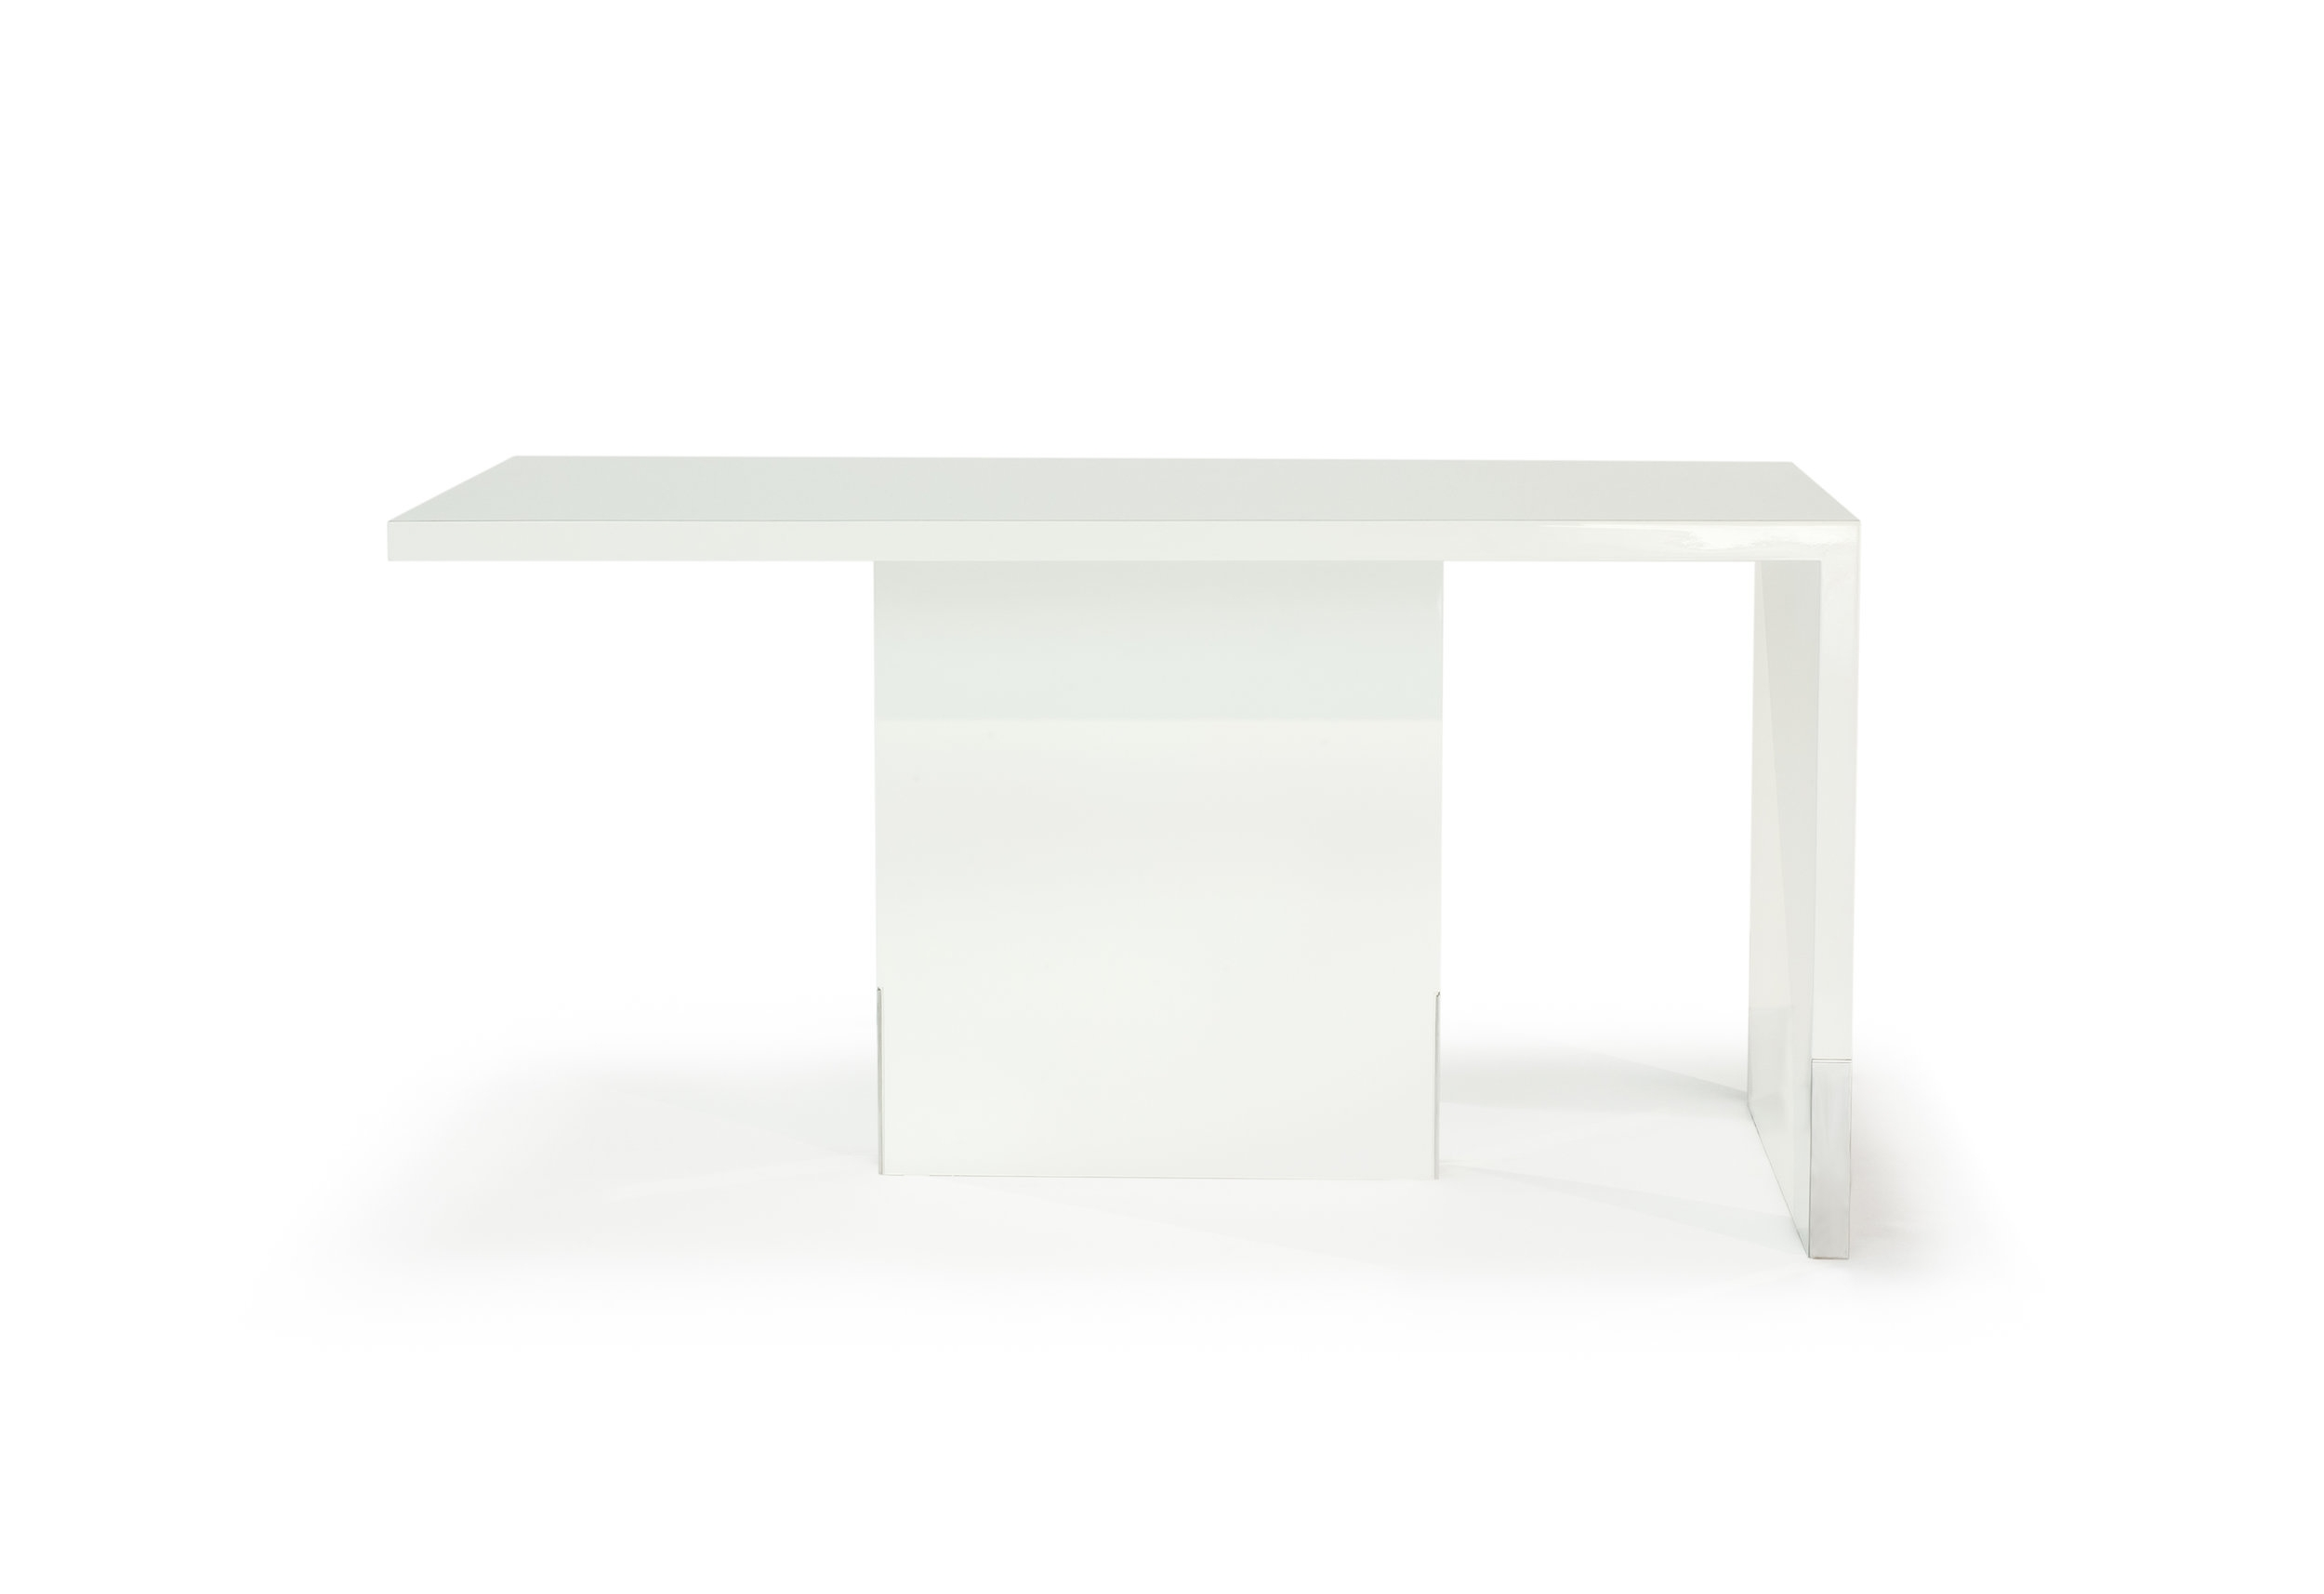 ....Bespoke Modern furniture : Dining Table..特别定制现代家具: 餐台....